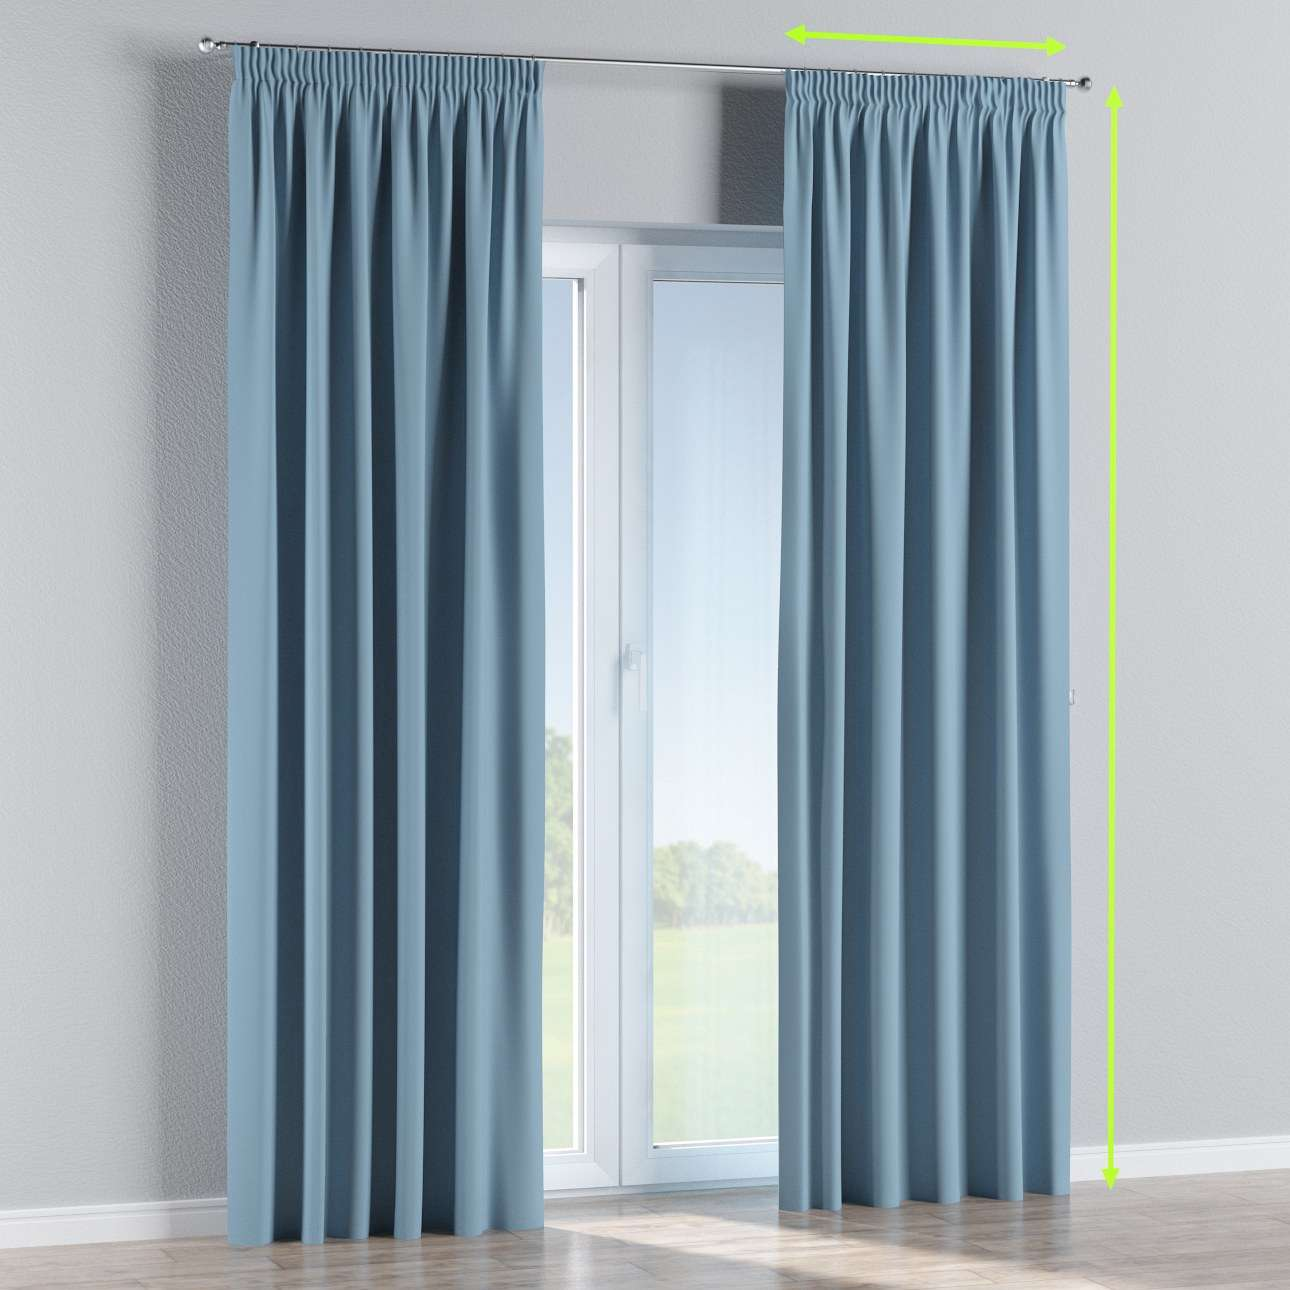 Blackout pencil pleat curtains in collection Blackout, fabric: 269-08